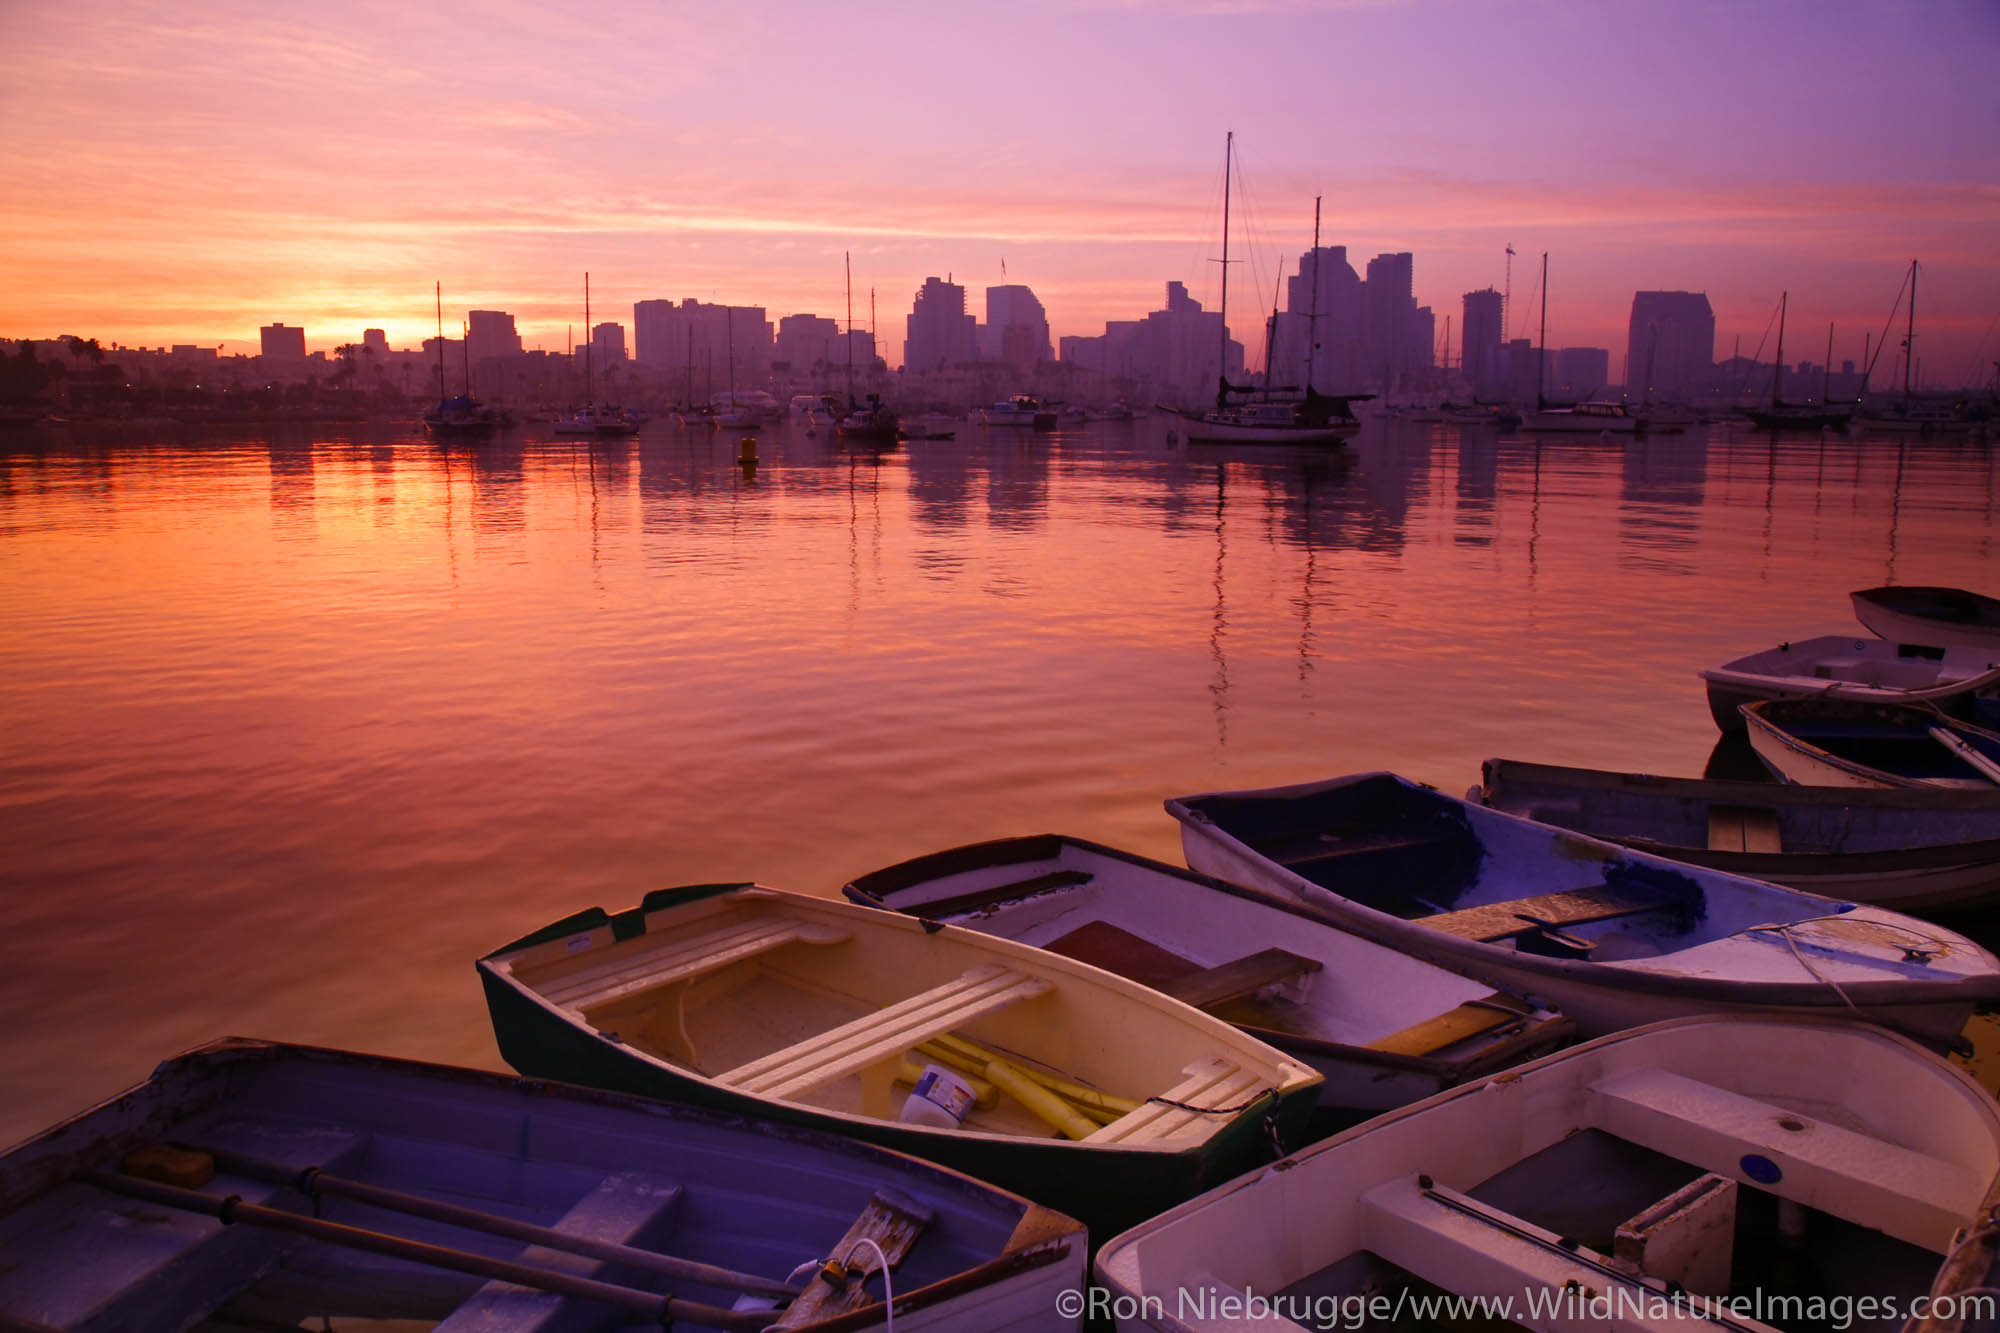 Small boats and the downtown skyline at sunrise, San Diego, California.